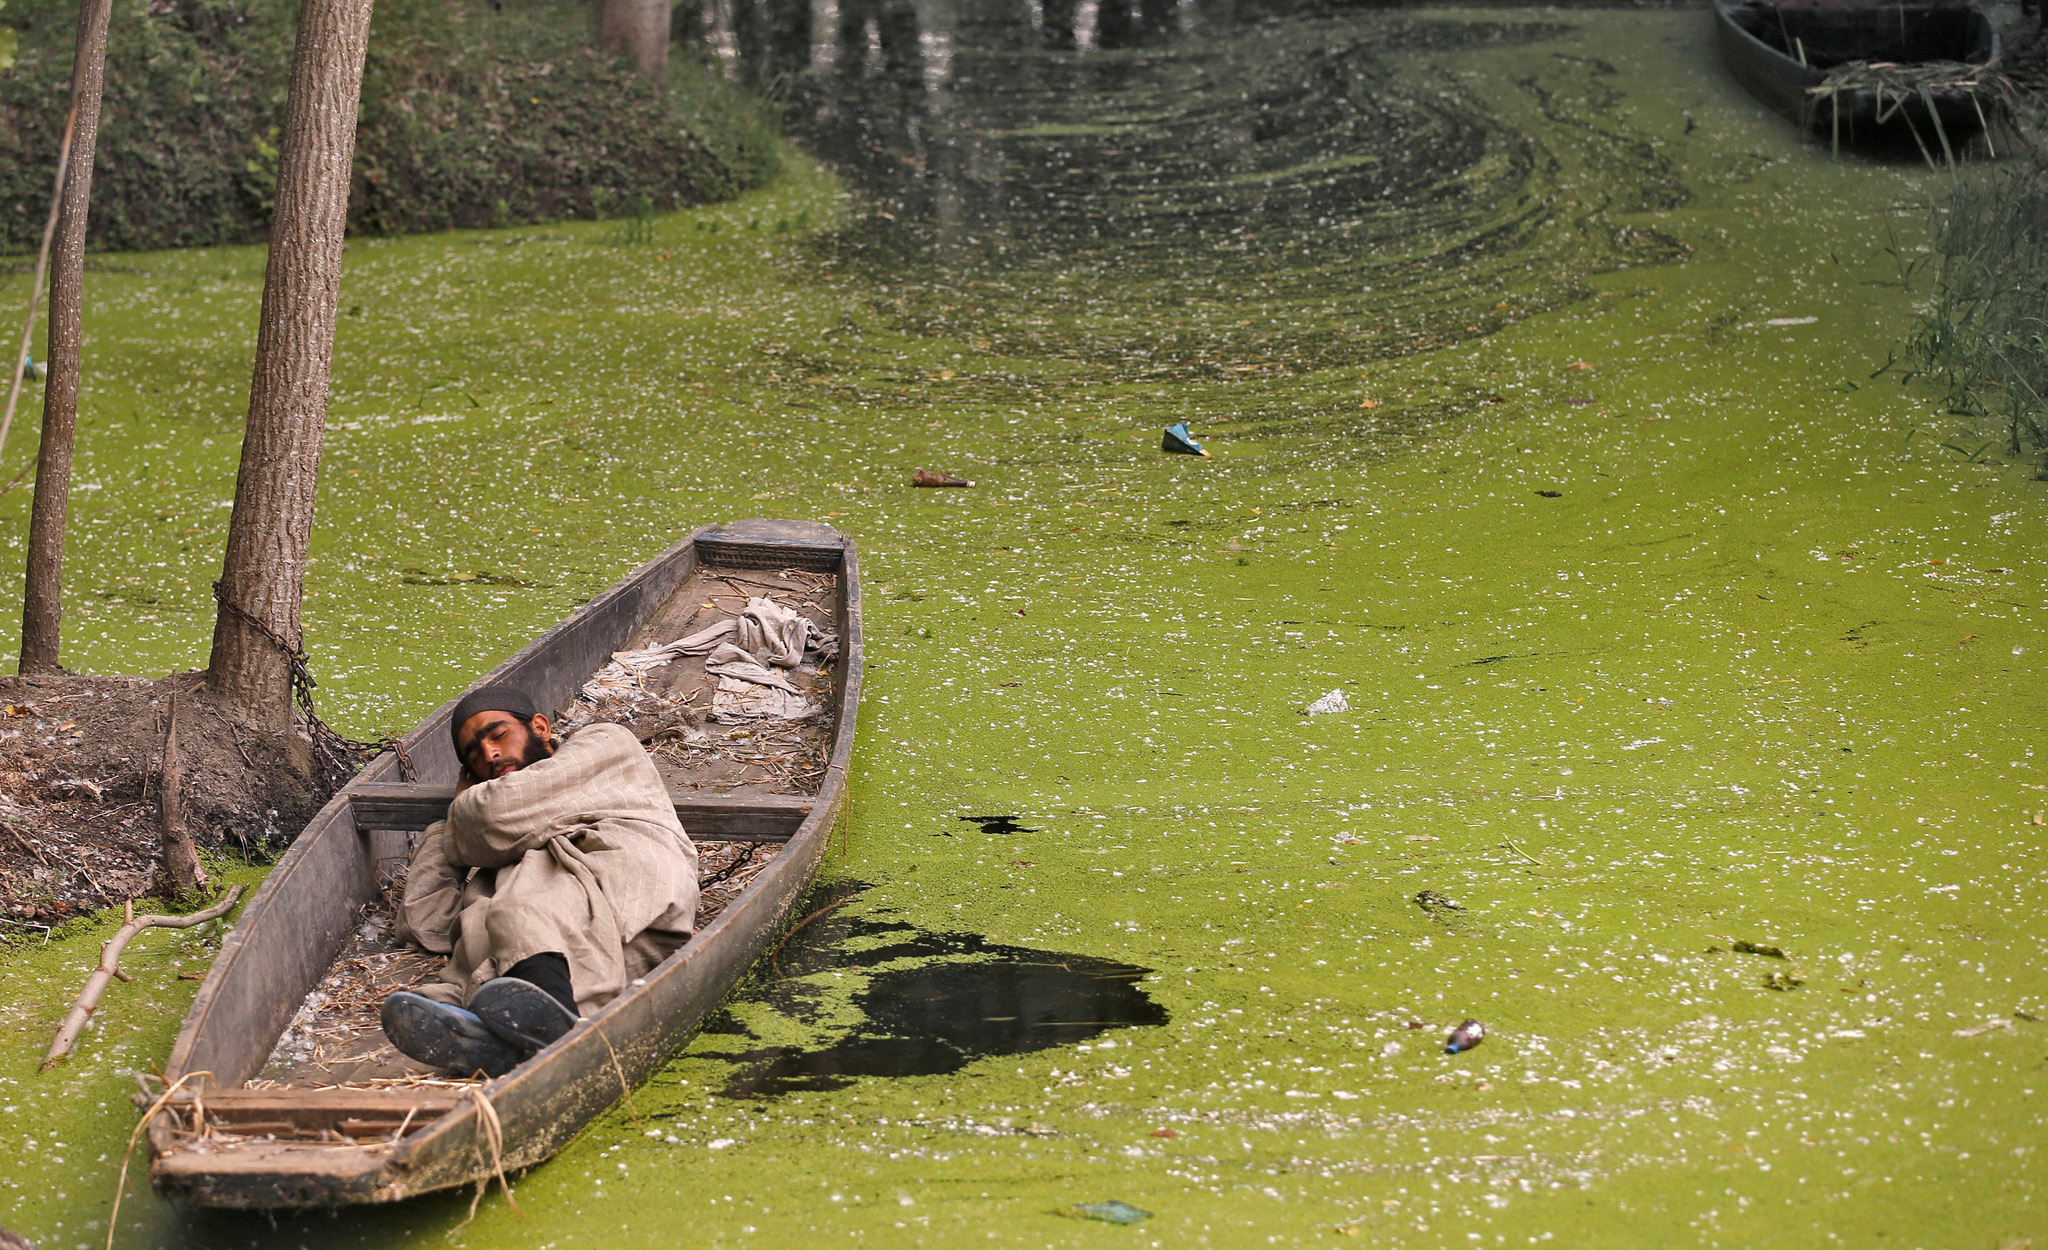 A Kashmiri man sleeps in a boat along the algae-covered Anchar Lake in Srinagar May 12, 2016